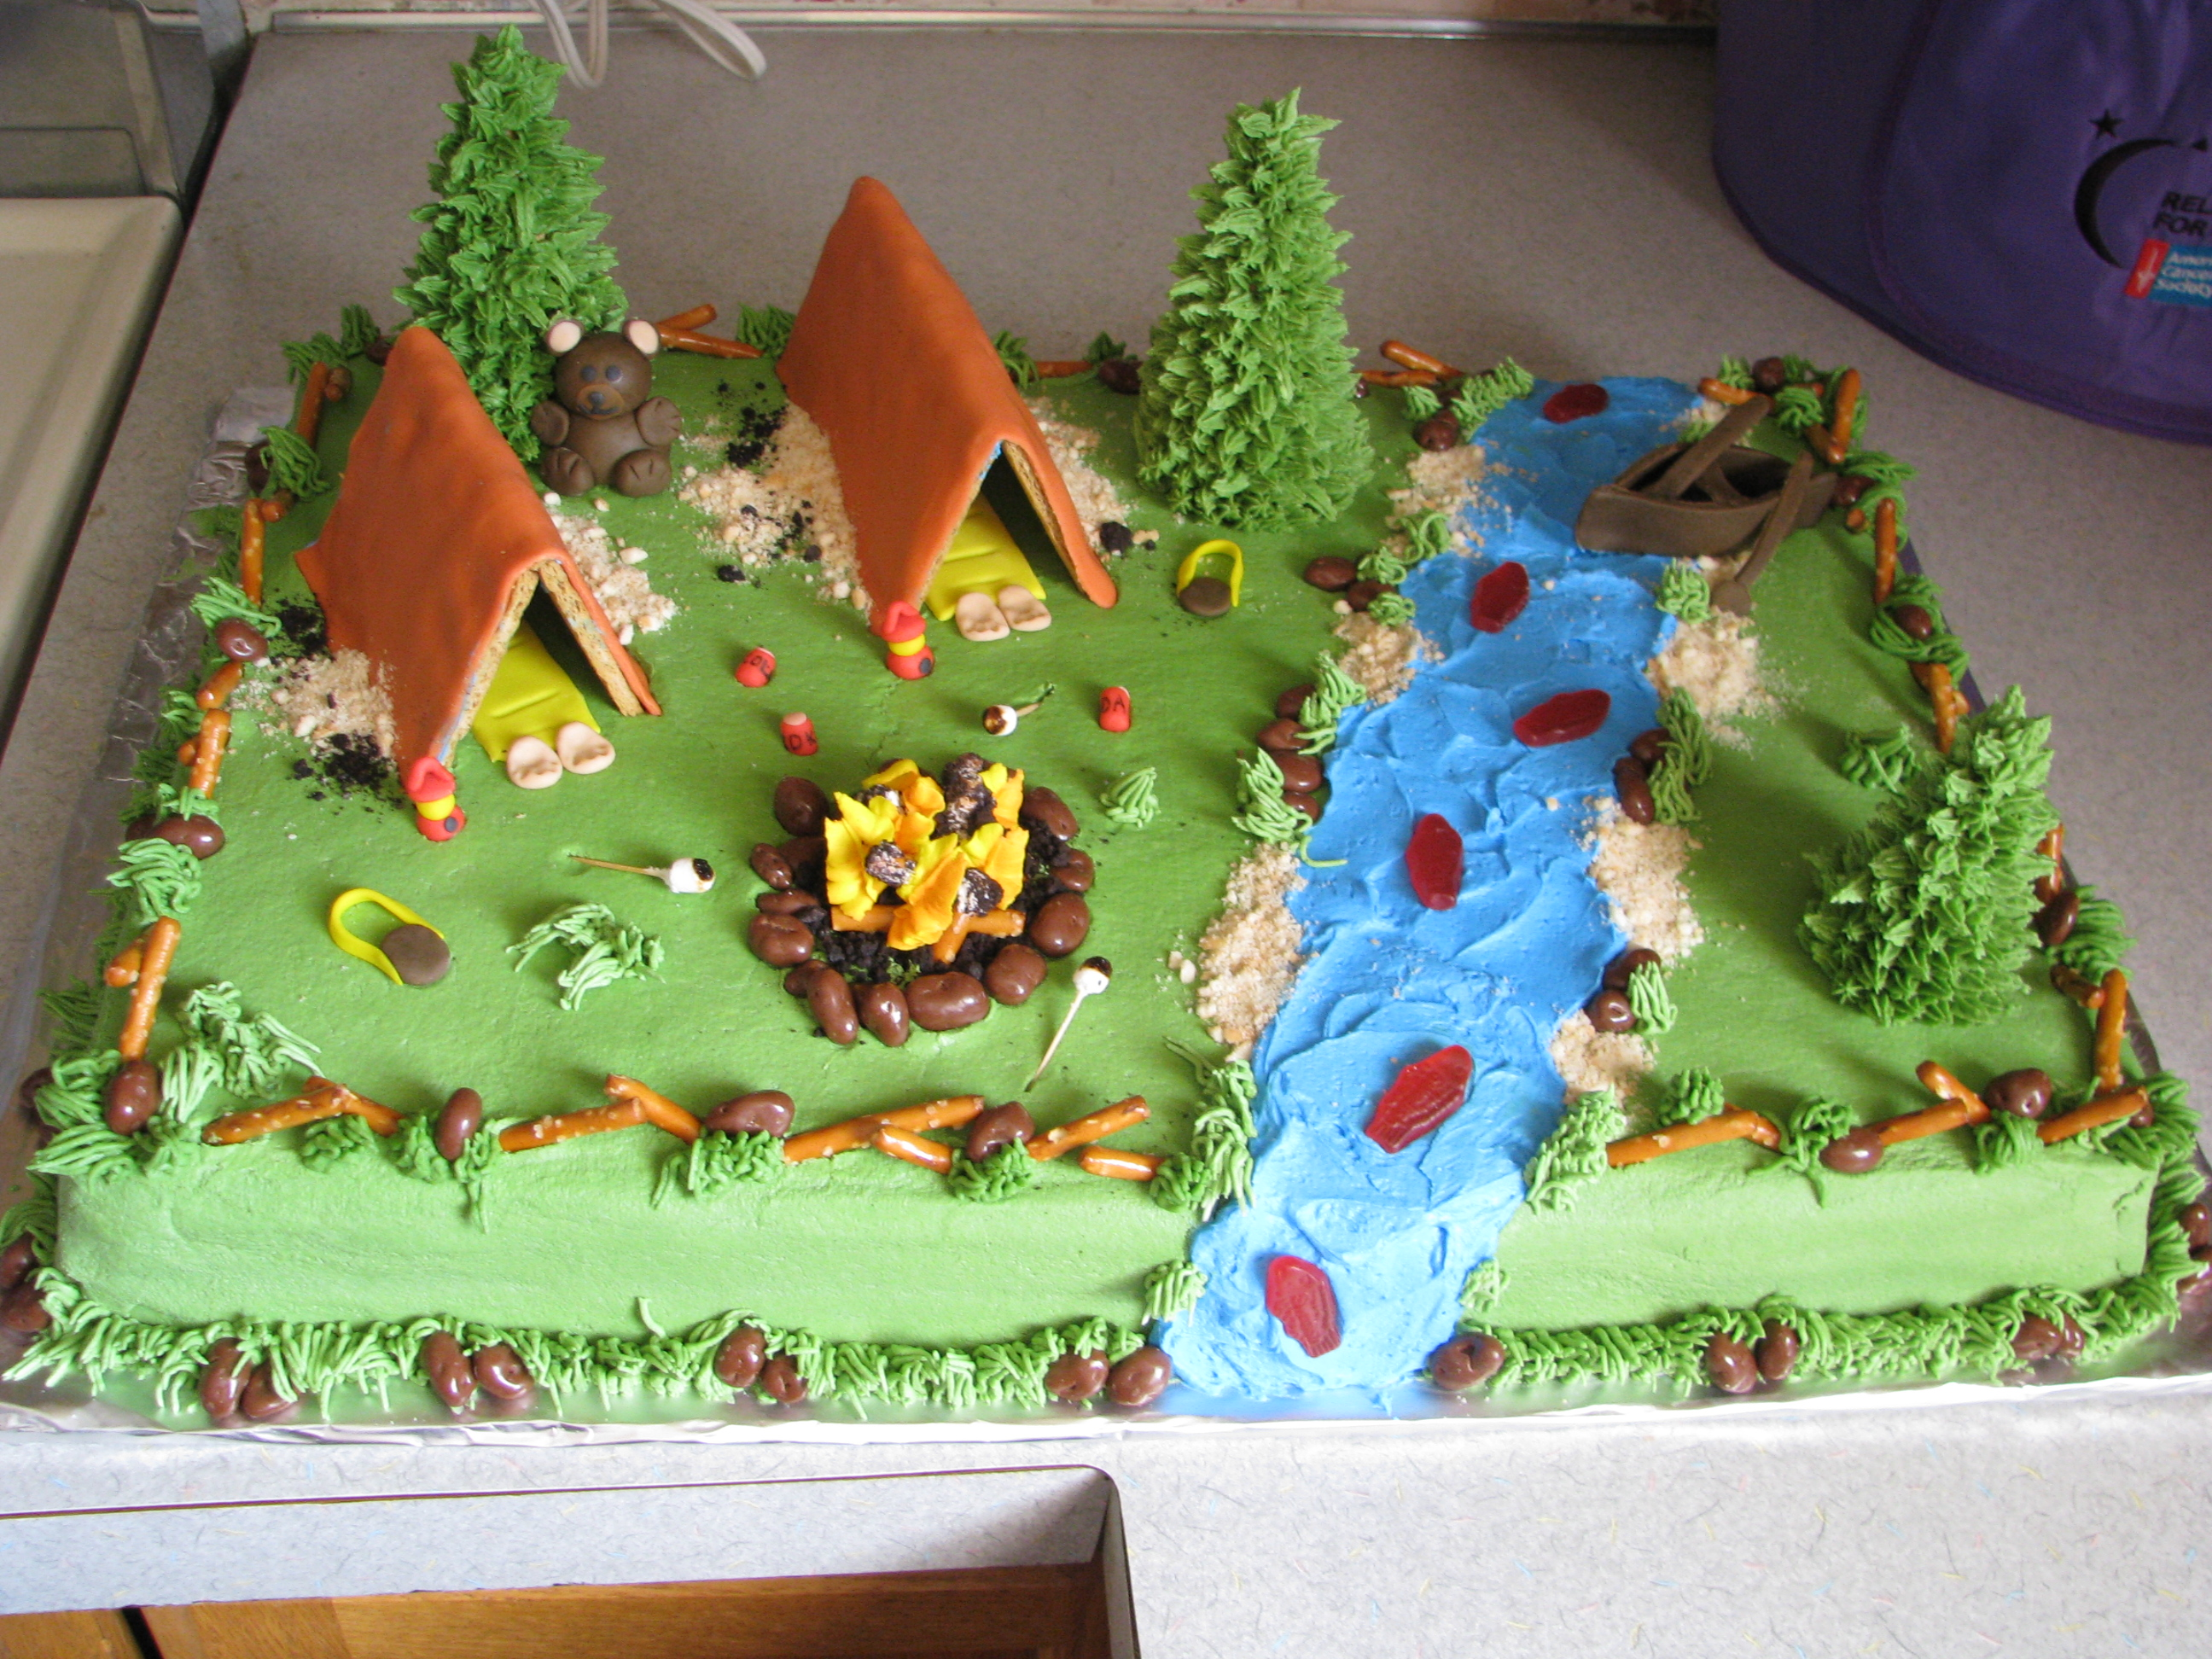 Cub Scout Cake Auction